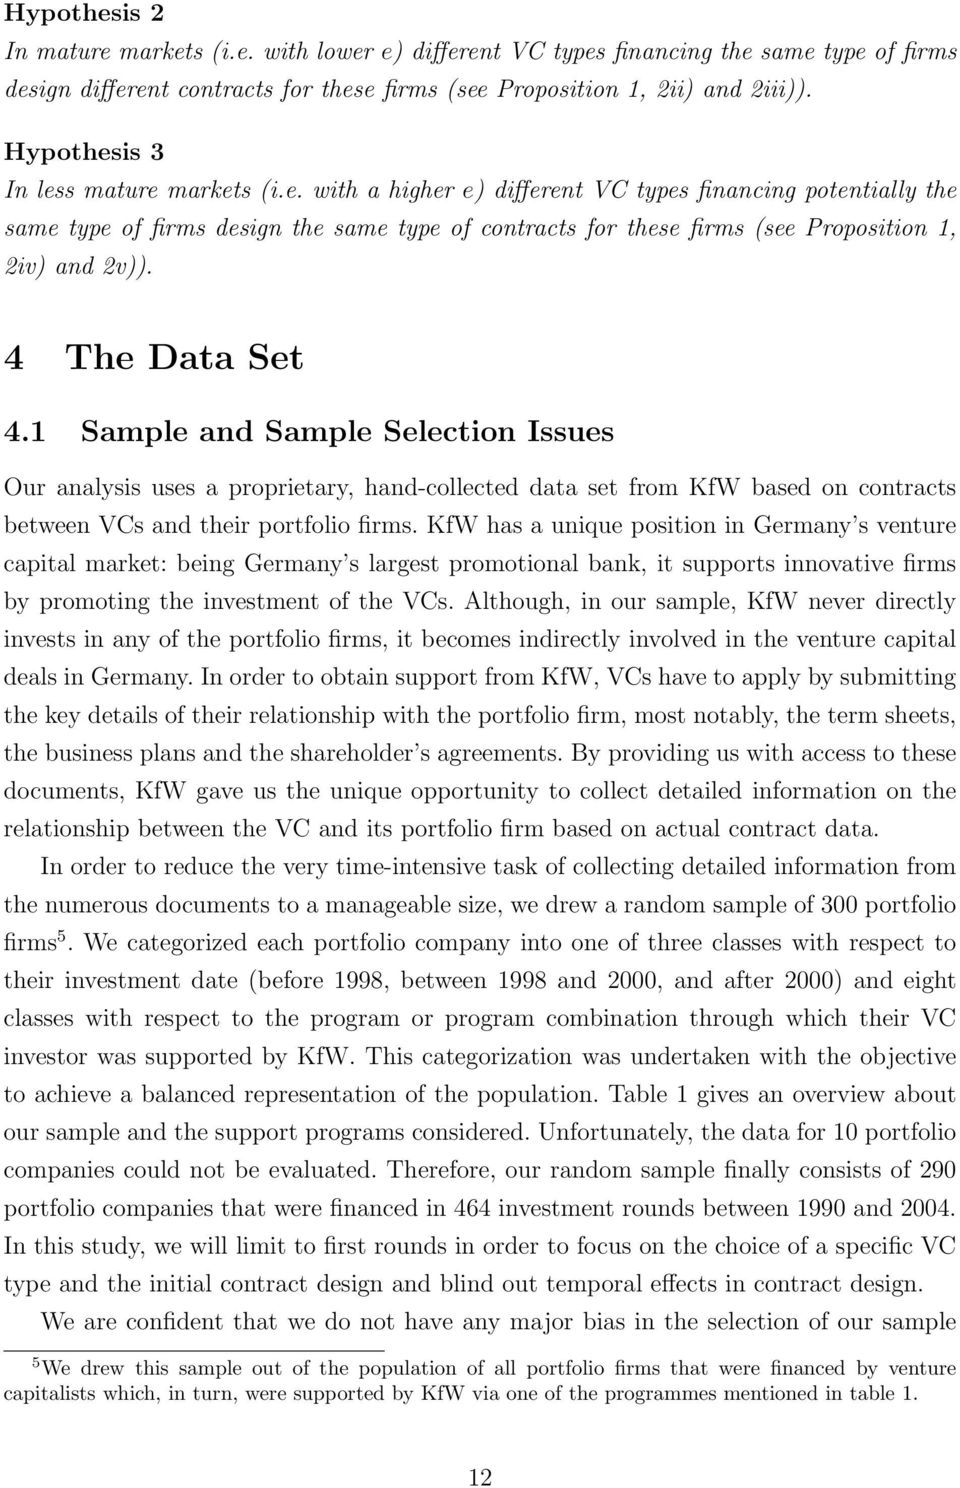 4 The Data Set 4.1 Sample and Sample Selection Issues Our analysis uses a proprietary, hand-collected data set from KfW based on contracts between VCs and their portfolio firms.